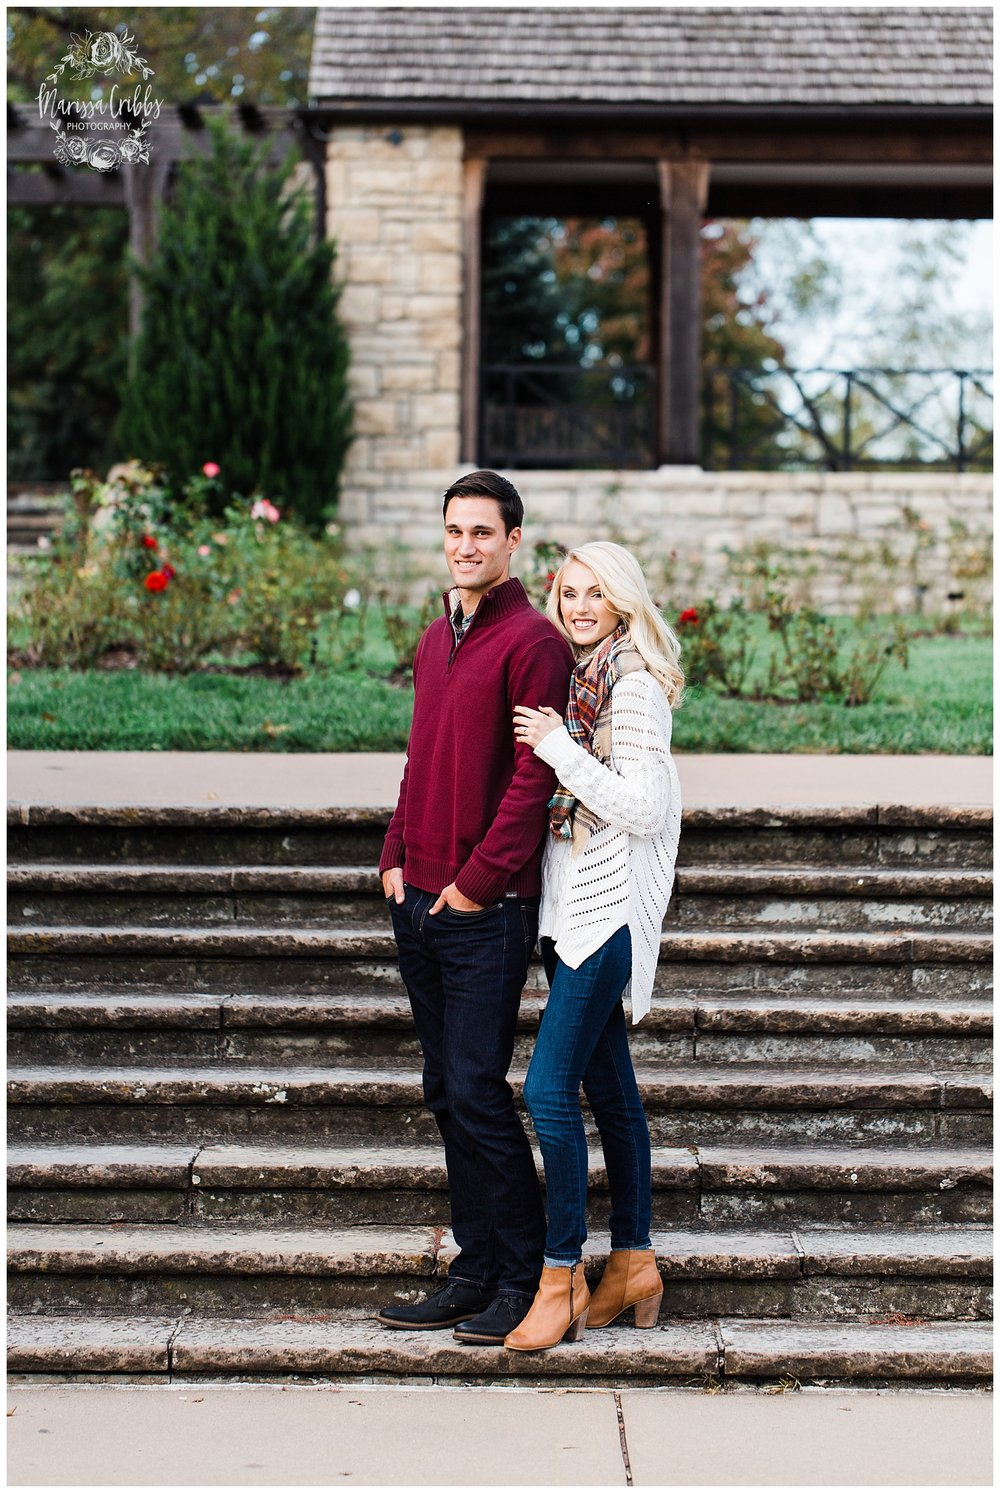 CLOE & GABE LIBERTY MEMORIAL ENGAGEMENT | MARISSA CRIBBS PHOTOGRAPHY | LOOSE PARK ENGAGEMENT_3445.jpg